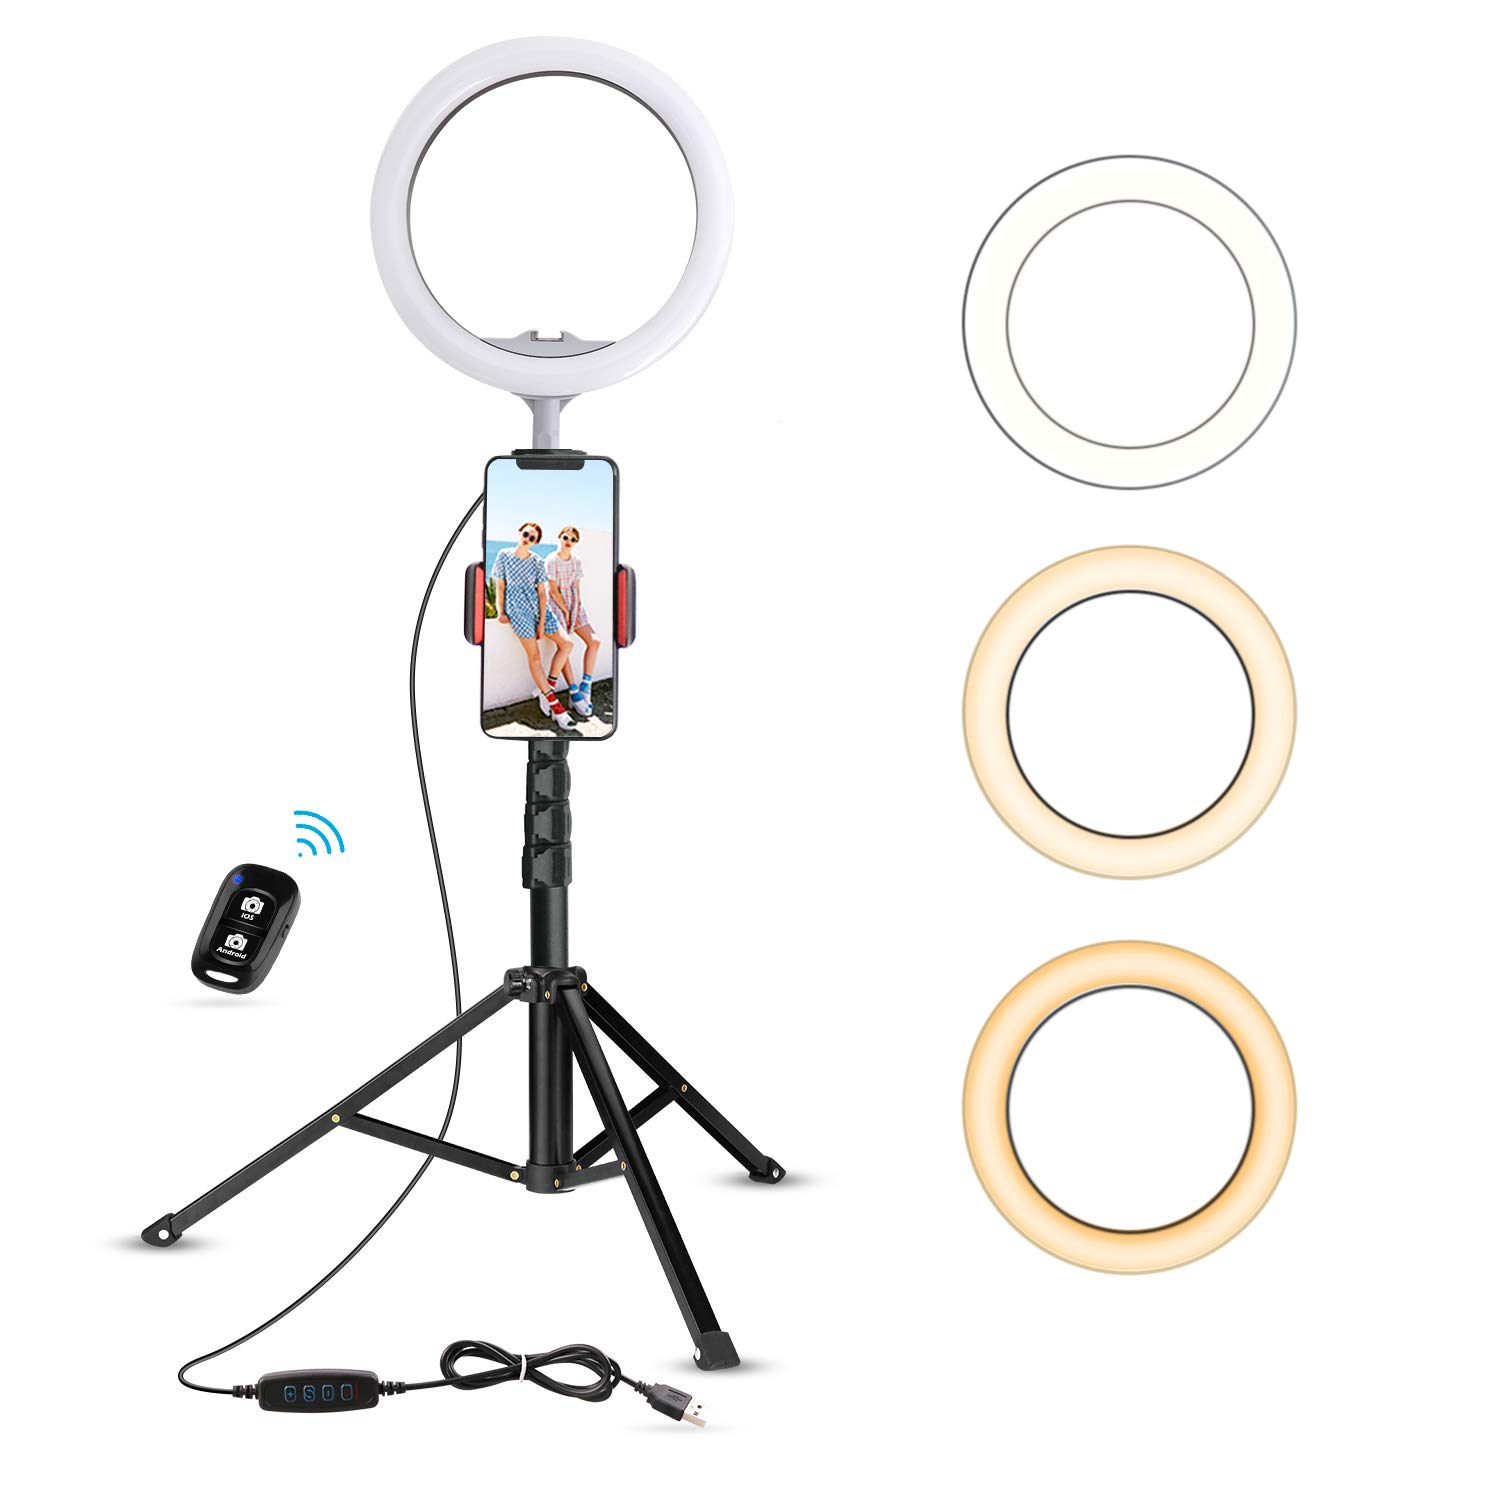 UBeesize 10.2'' Selfie Ring Light with Tripod Stand & Cell Phone Holder for Live Stream/Makeup, Mini Led Camera Ringlight for YouTube Video/Photography Compatible with iPhone Android (Upgraded) by UBeesize (Image #1)